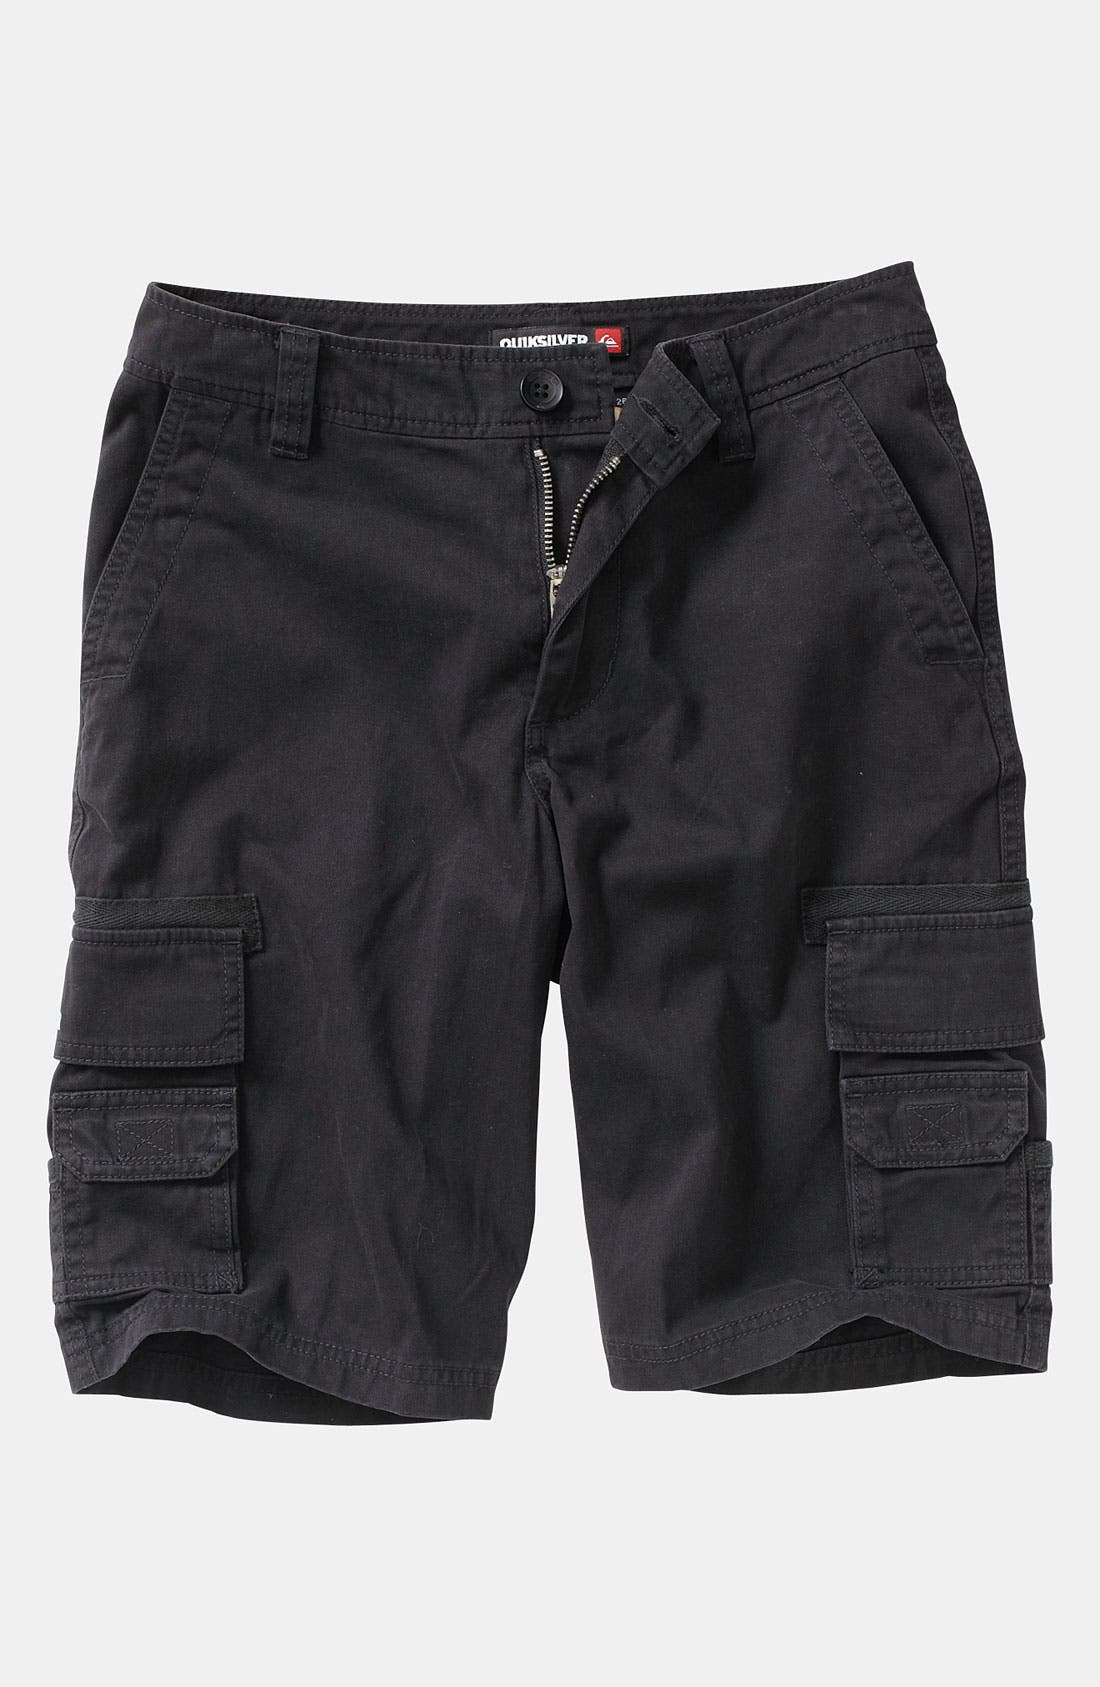 Alternate Image 1 Selected - Quiksilver 'Escargot' Cargo Shorts (Big Boys)